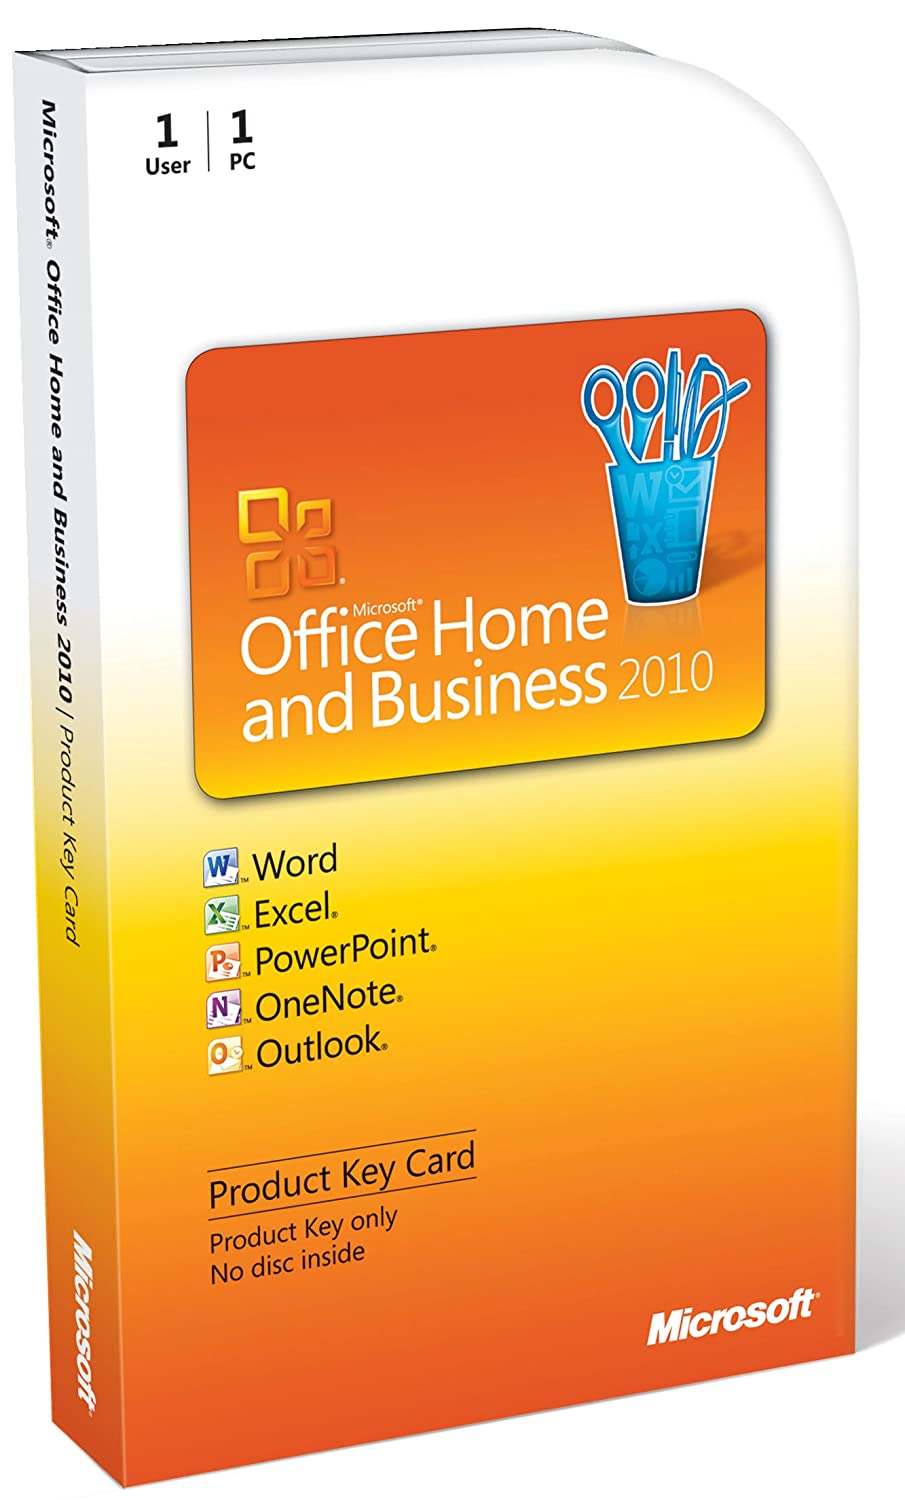 Microsoft Office Home Mail order Max 74% OFF cheap Business 2010 1PC Card Key - 1User